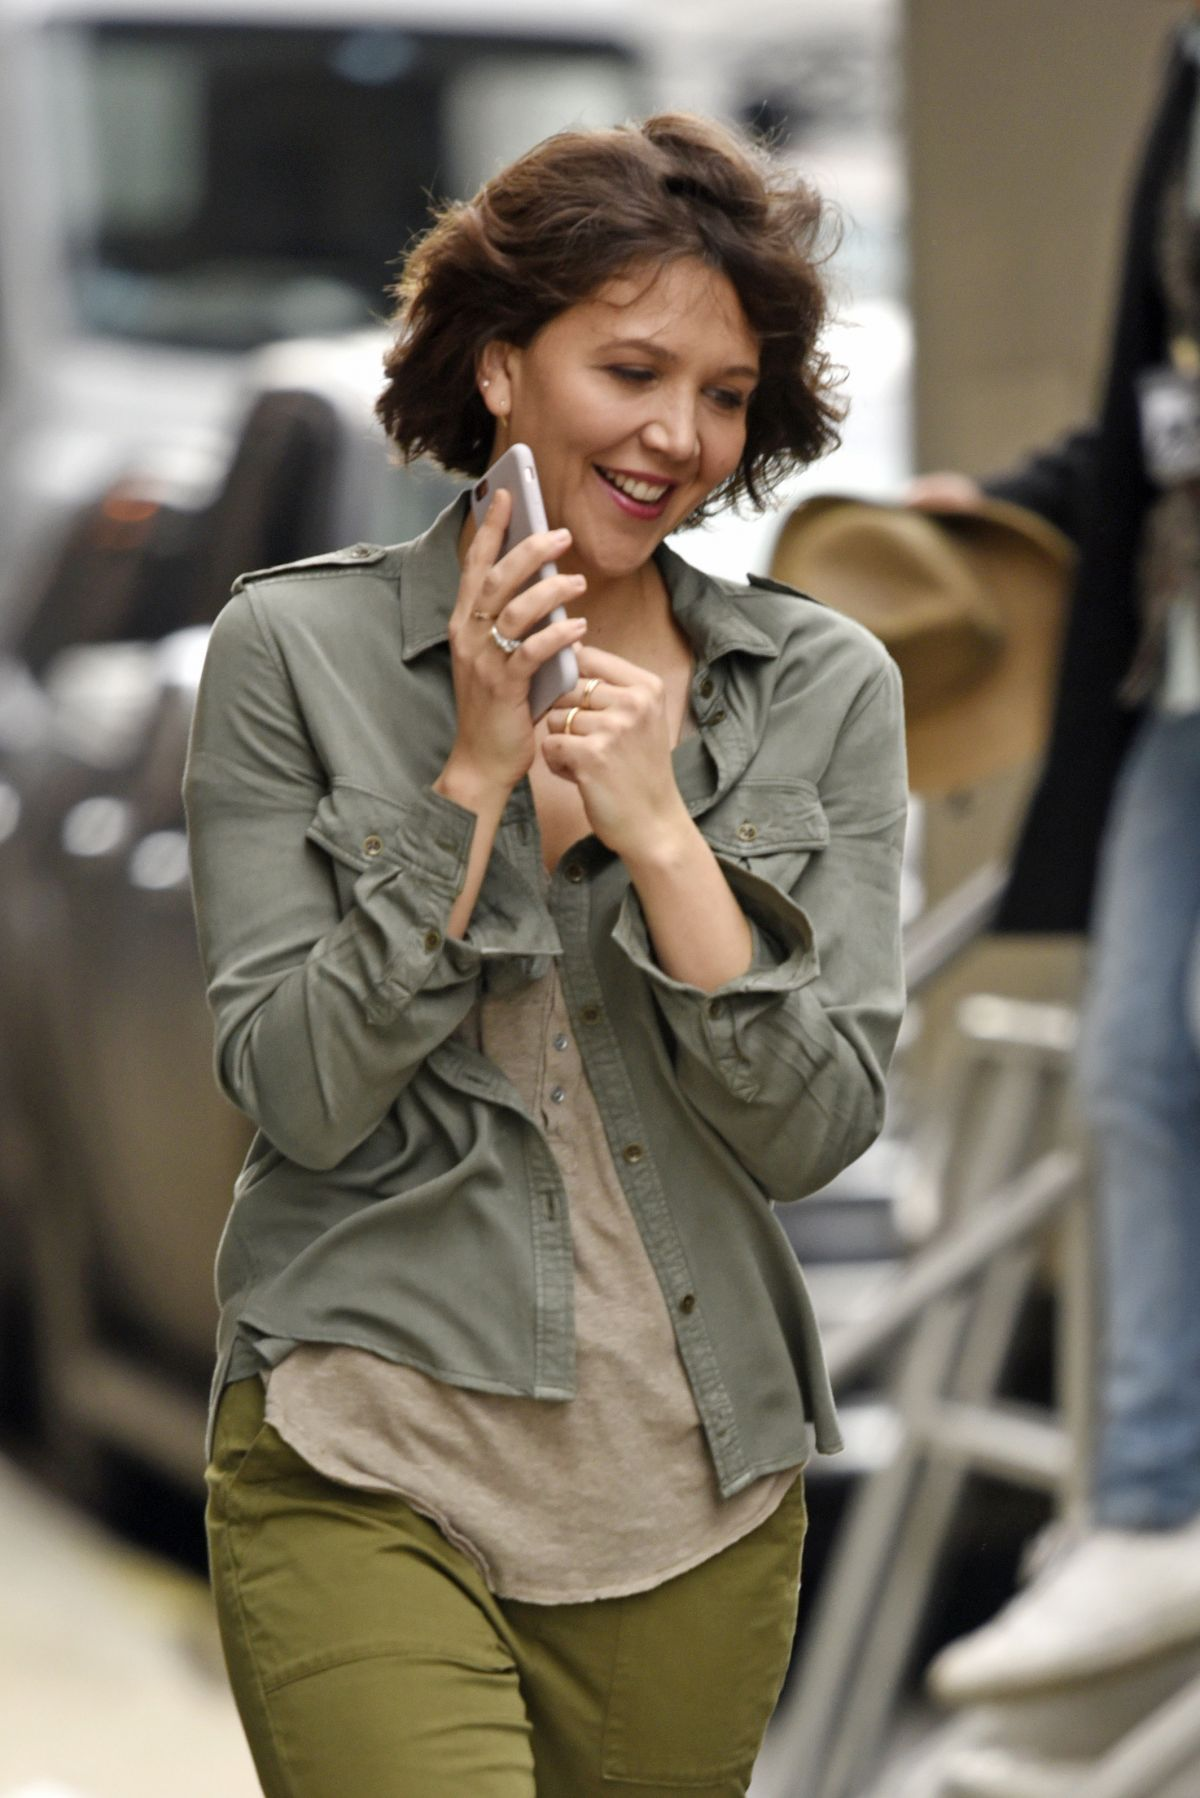 MAGGIE GYLLENHAAL Arrives at Inside Amy Schumer Set in New York Maggie Gyllenhaal